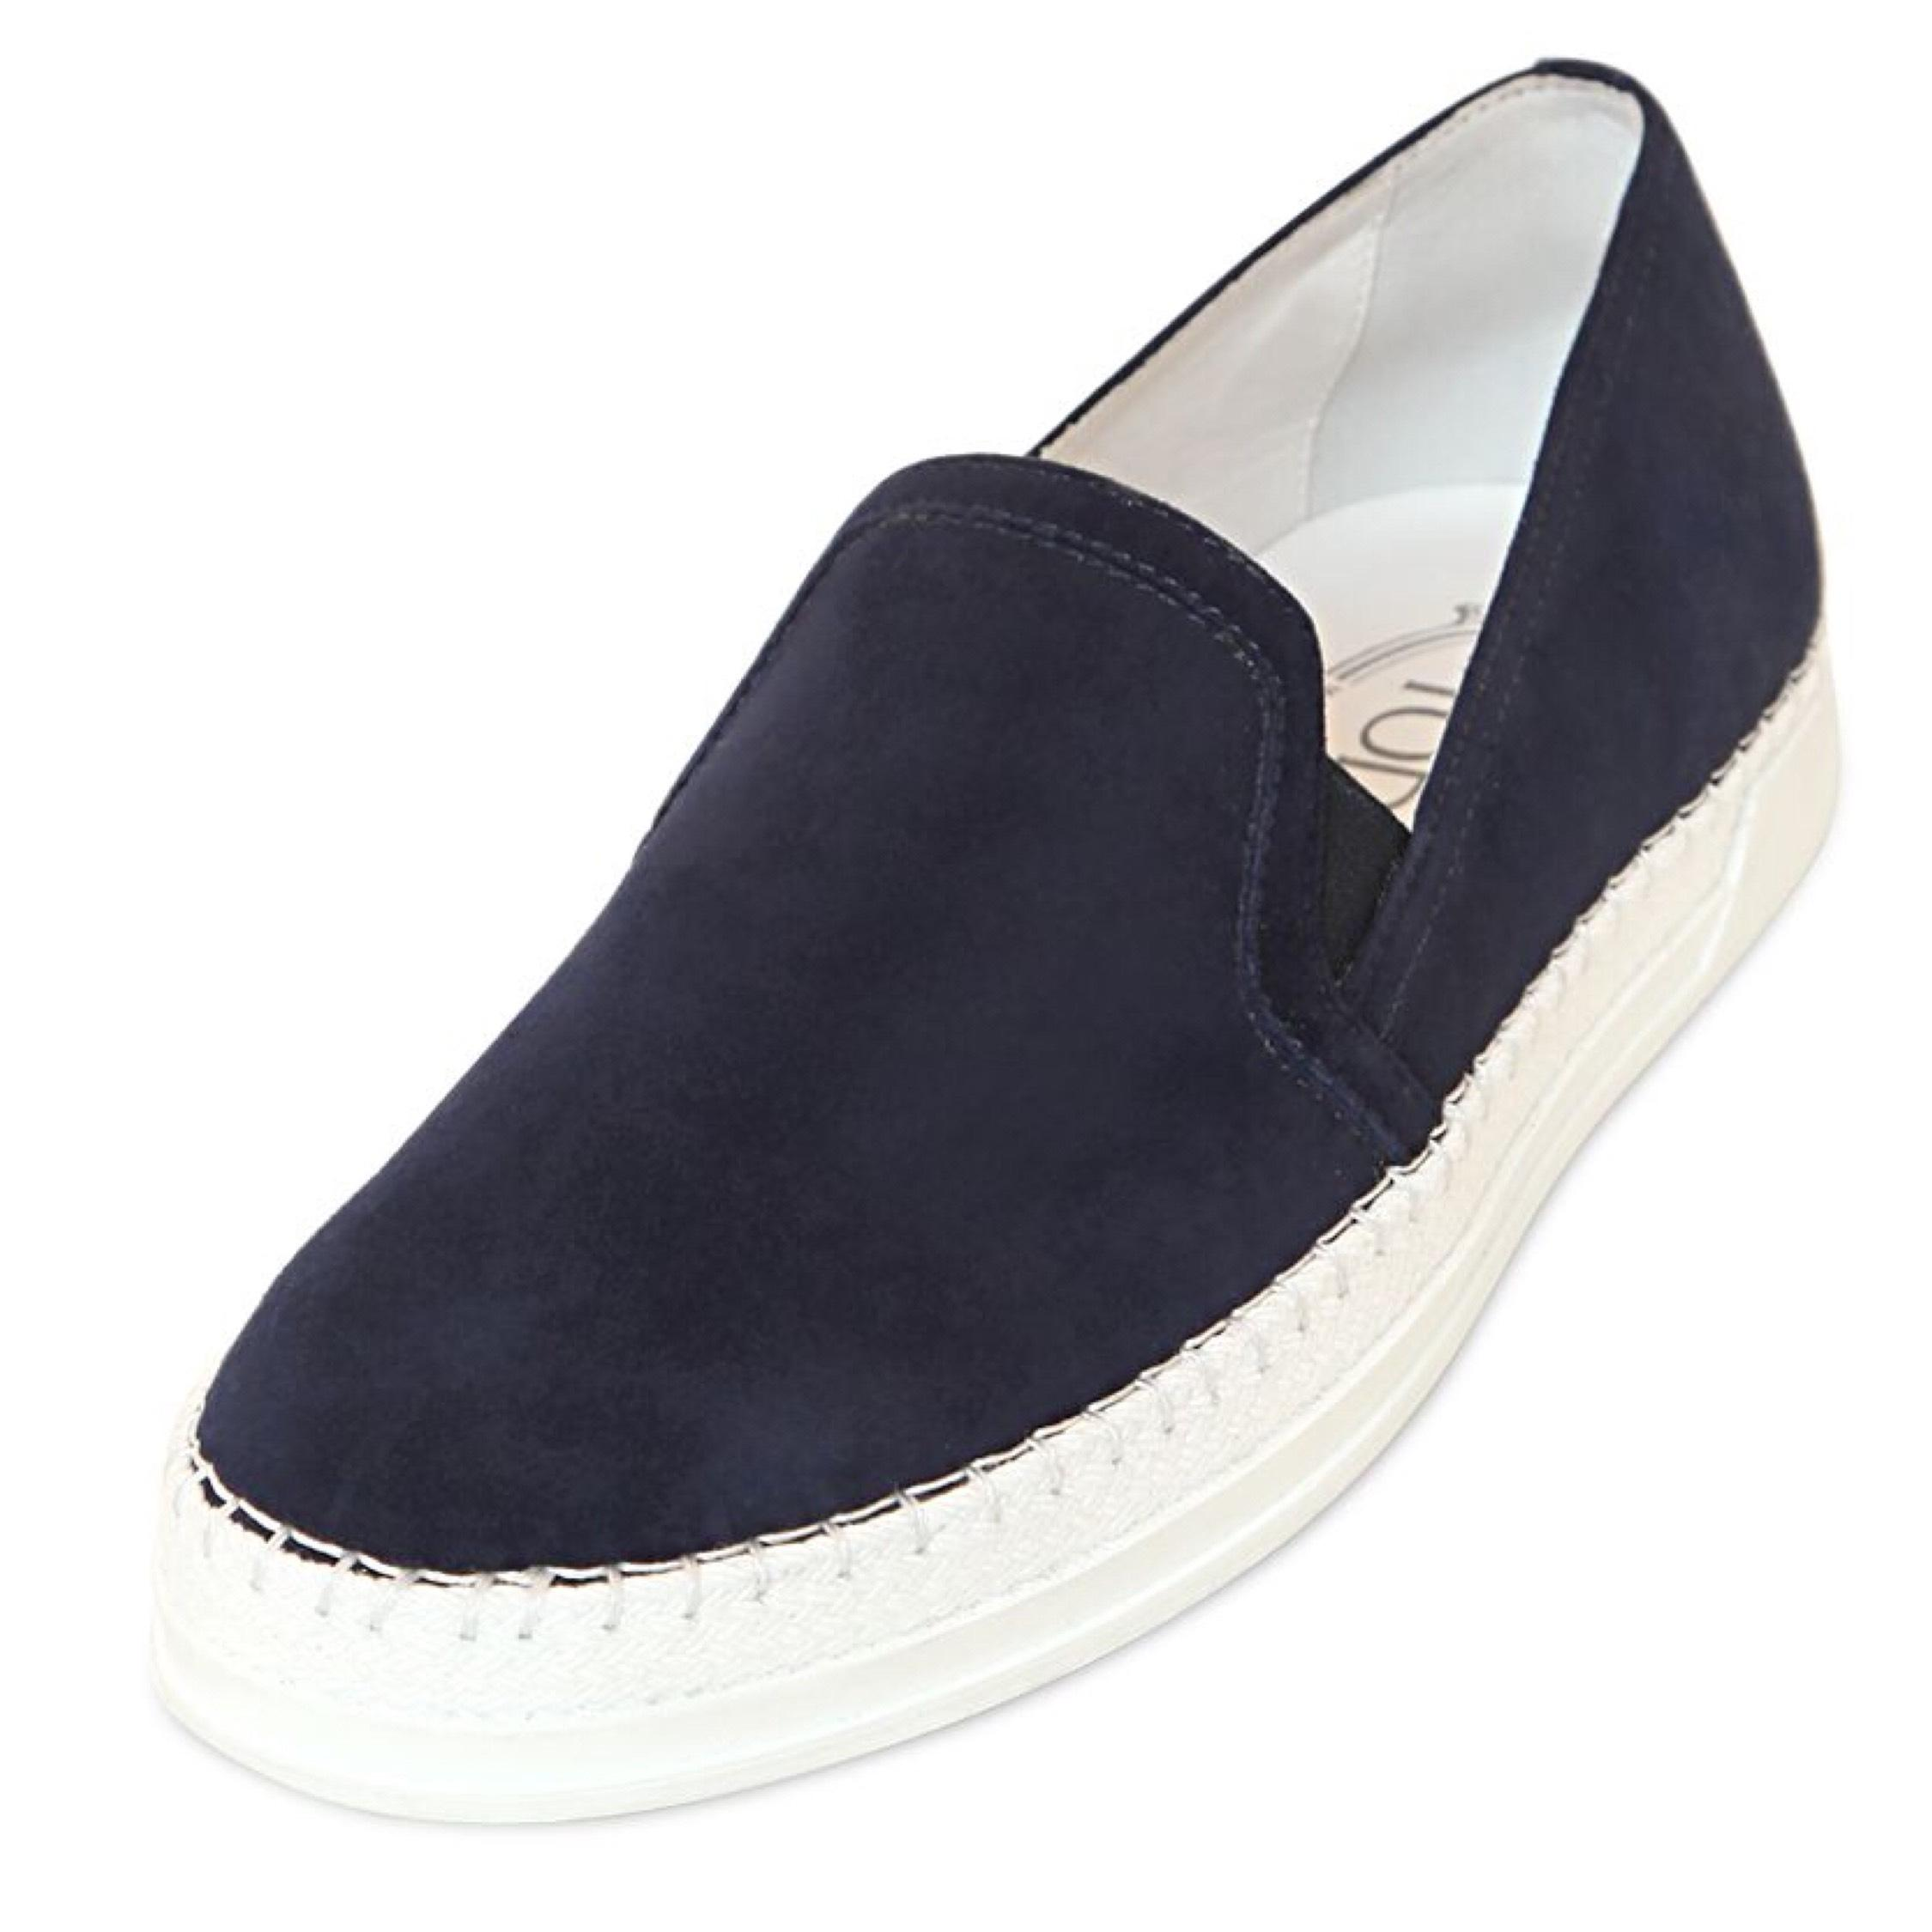 Tod's Suede Slip On Sneakers Sneakers Size EU 40 (Approx. US 10) Regular (M, B)